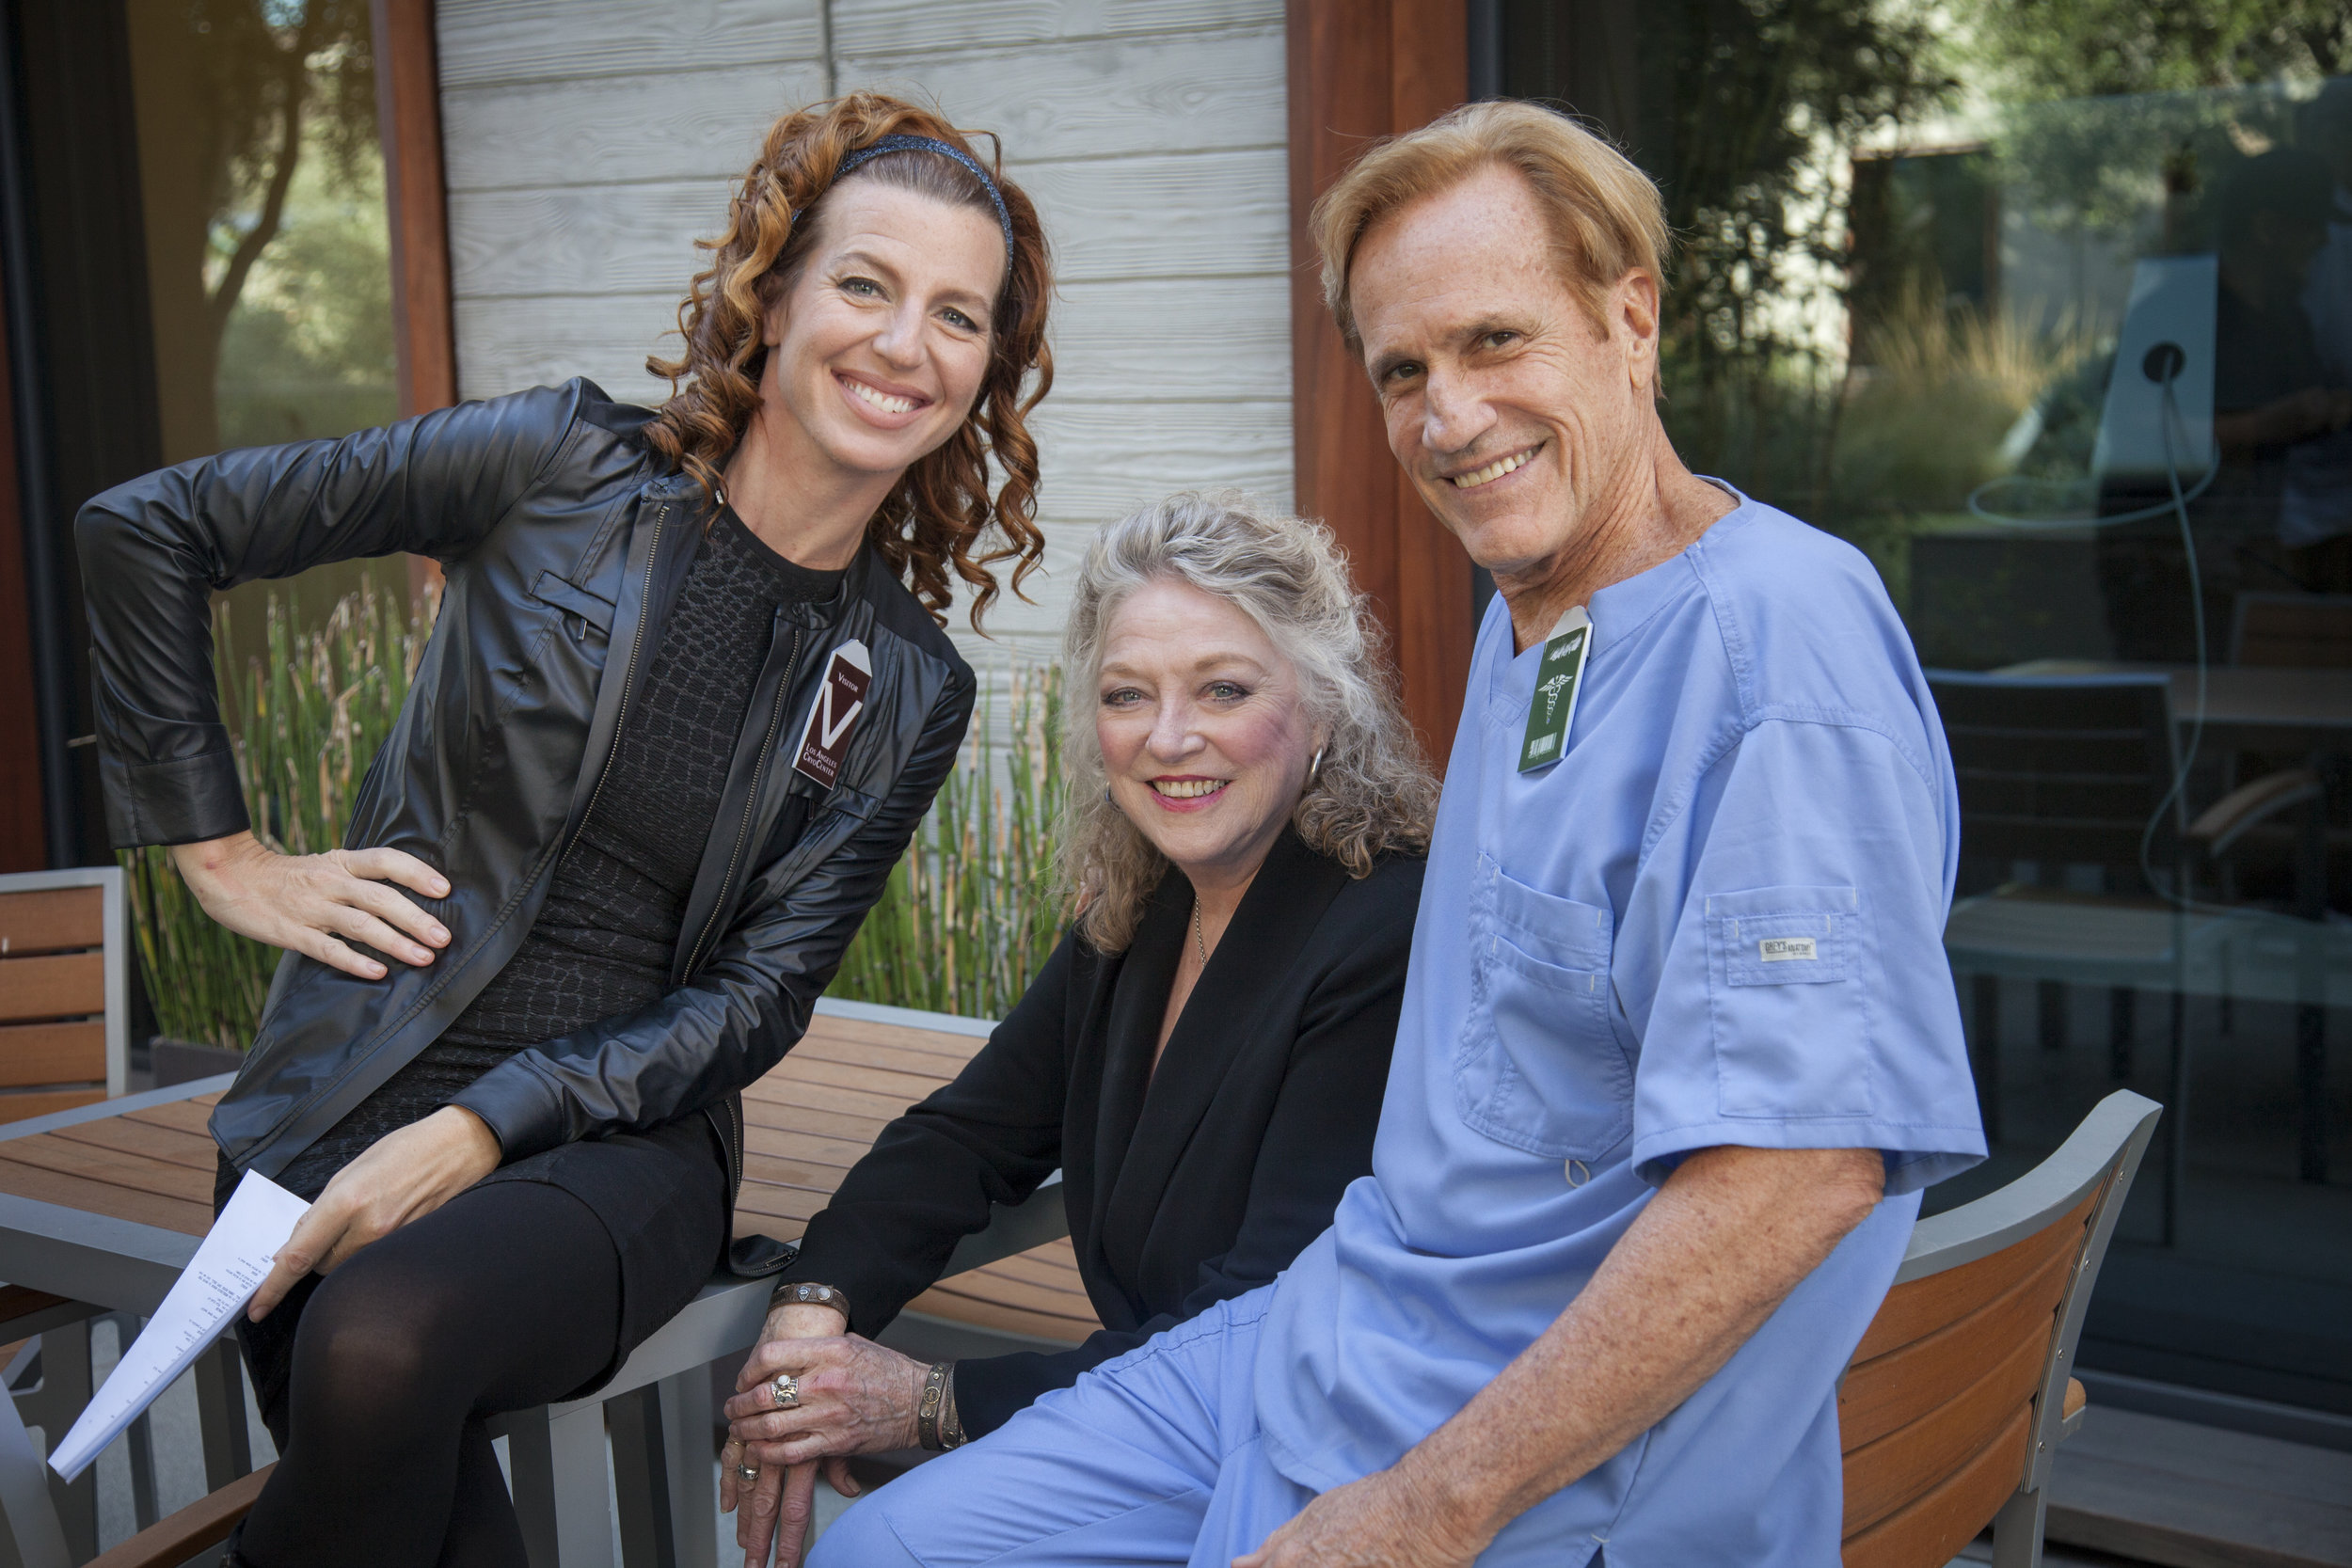 (BTS Series) (Actresses Tanna Frederick and Veronica Cartwright with director Randal Kleiser).jpg